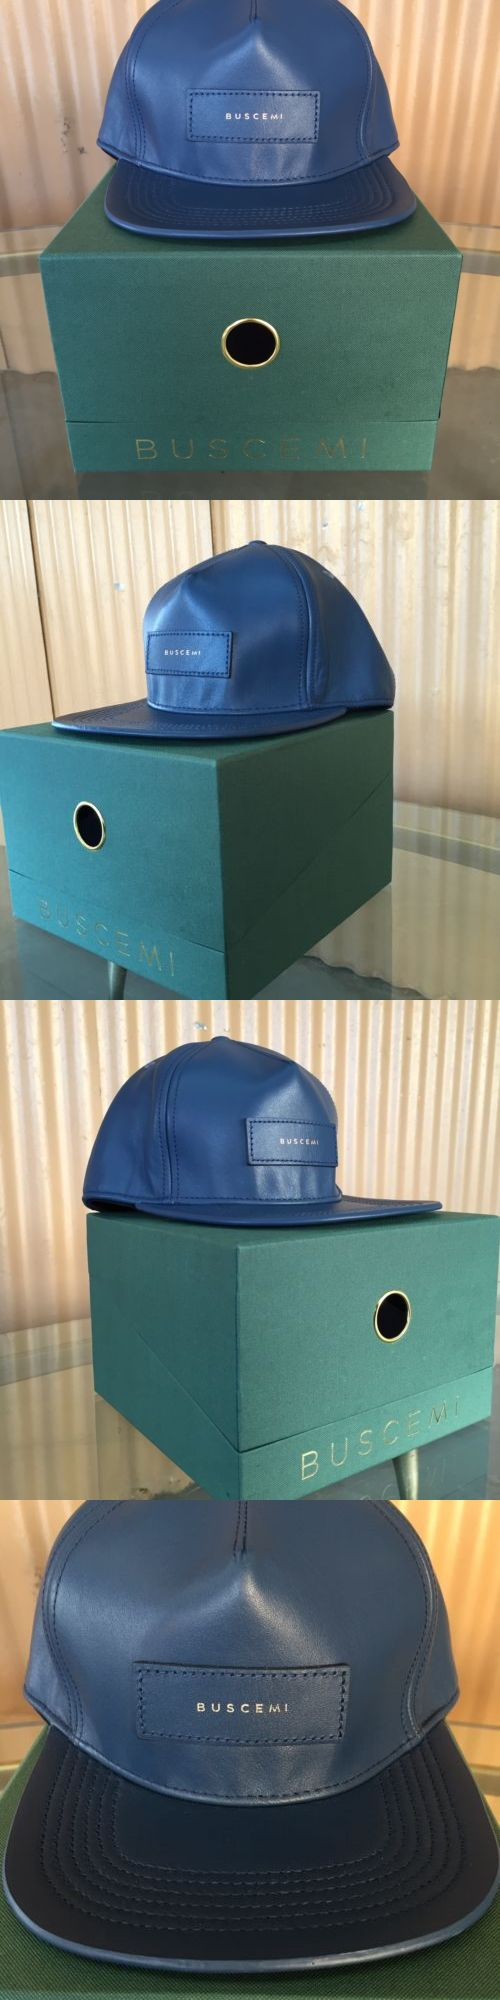 Hats 163543: Nwt Authentic Buscemi Postback Leather Hat With Box -> BUY IT NOW ONLY: $120 on eBay!